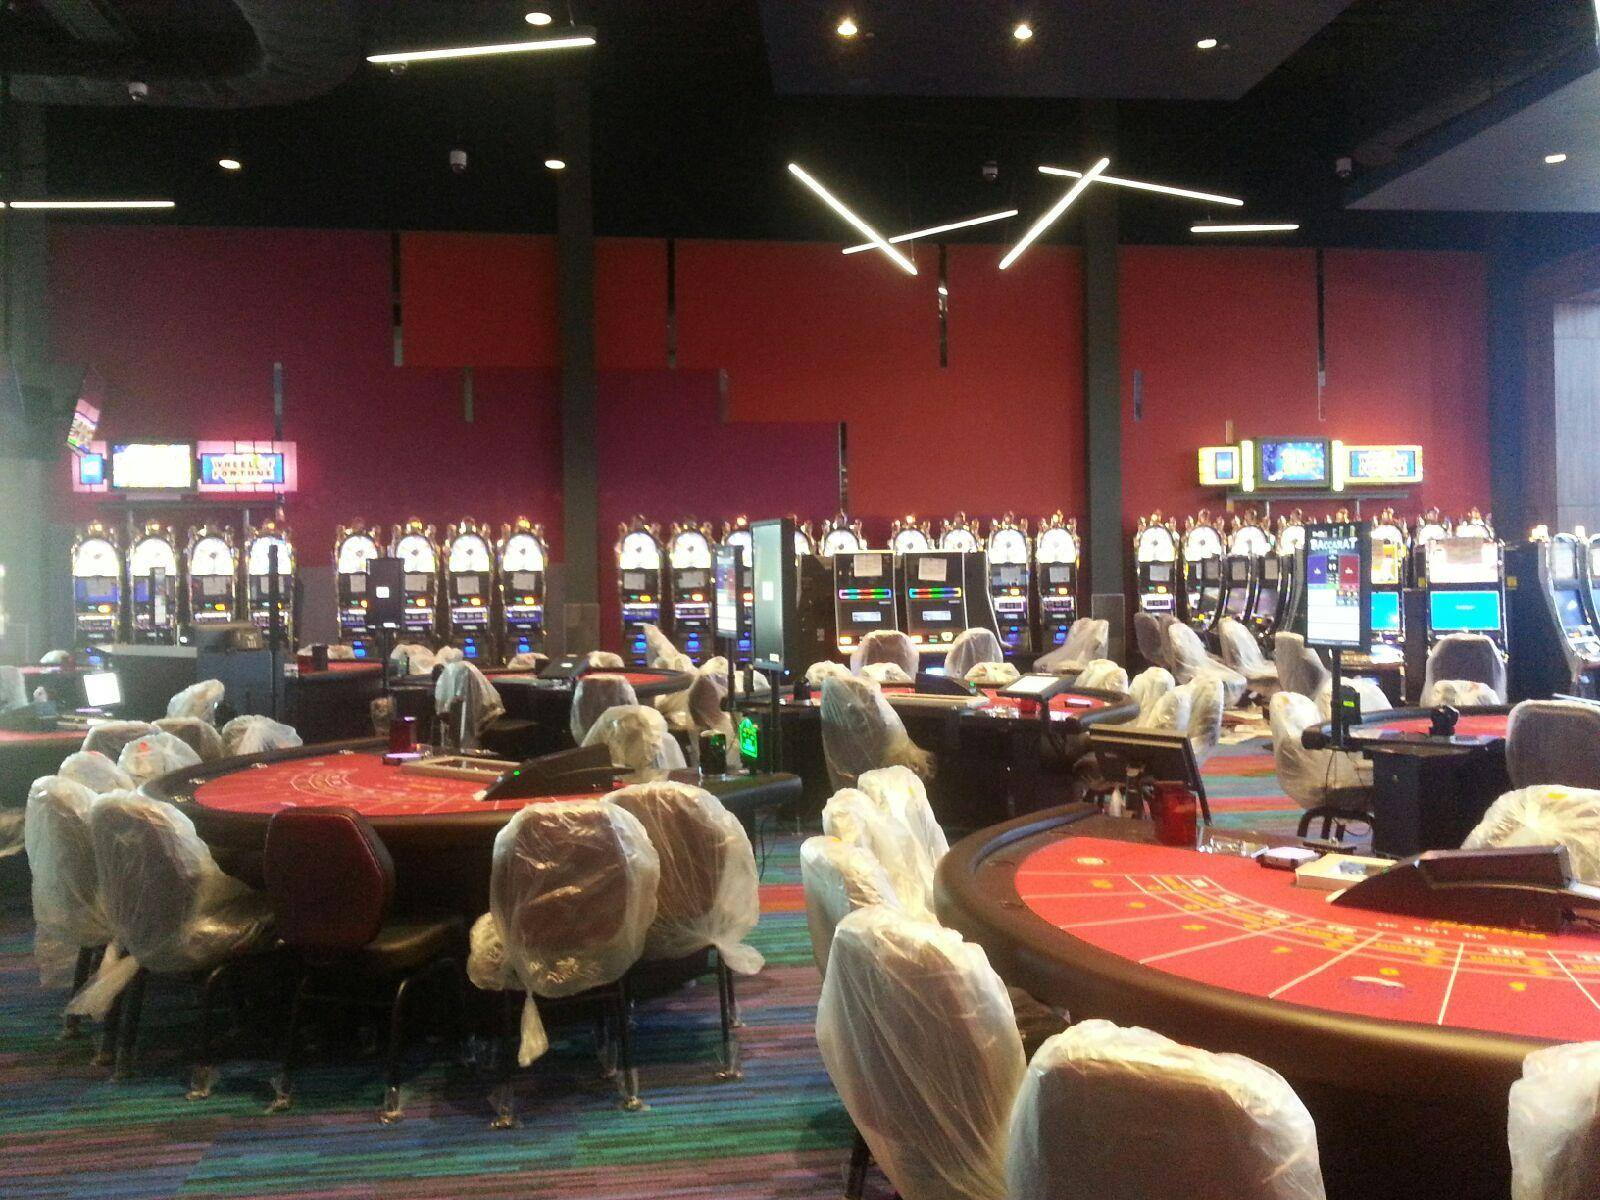 Eastern Cherokees prepare for opening of new gaming facility